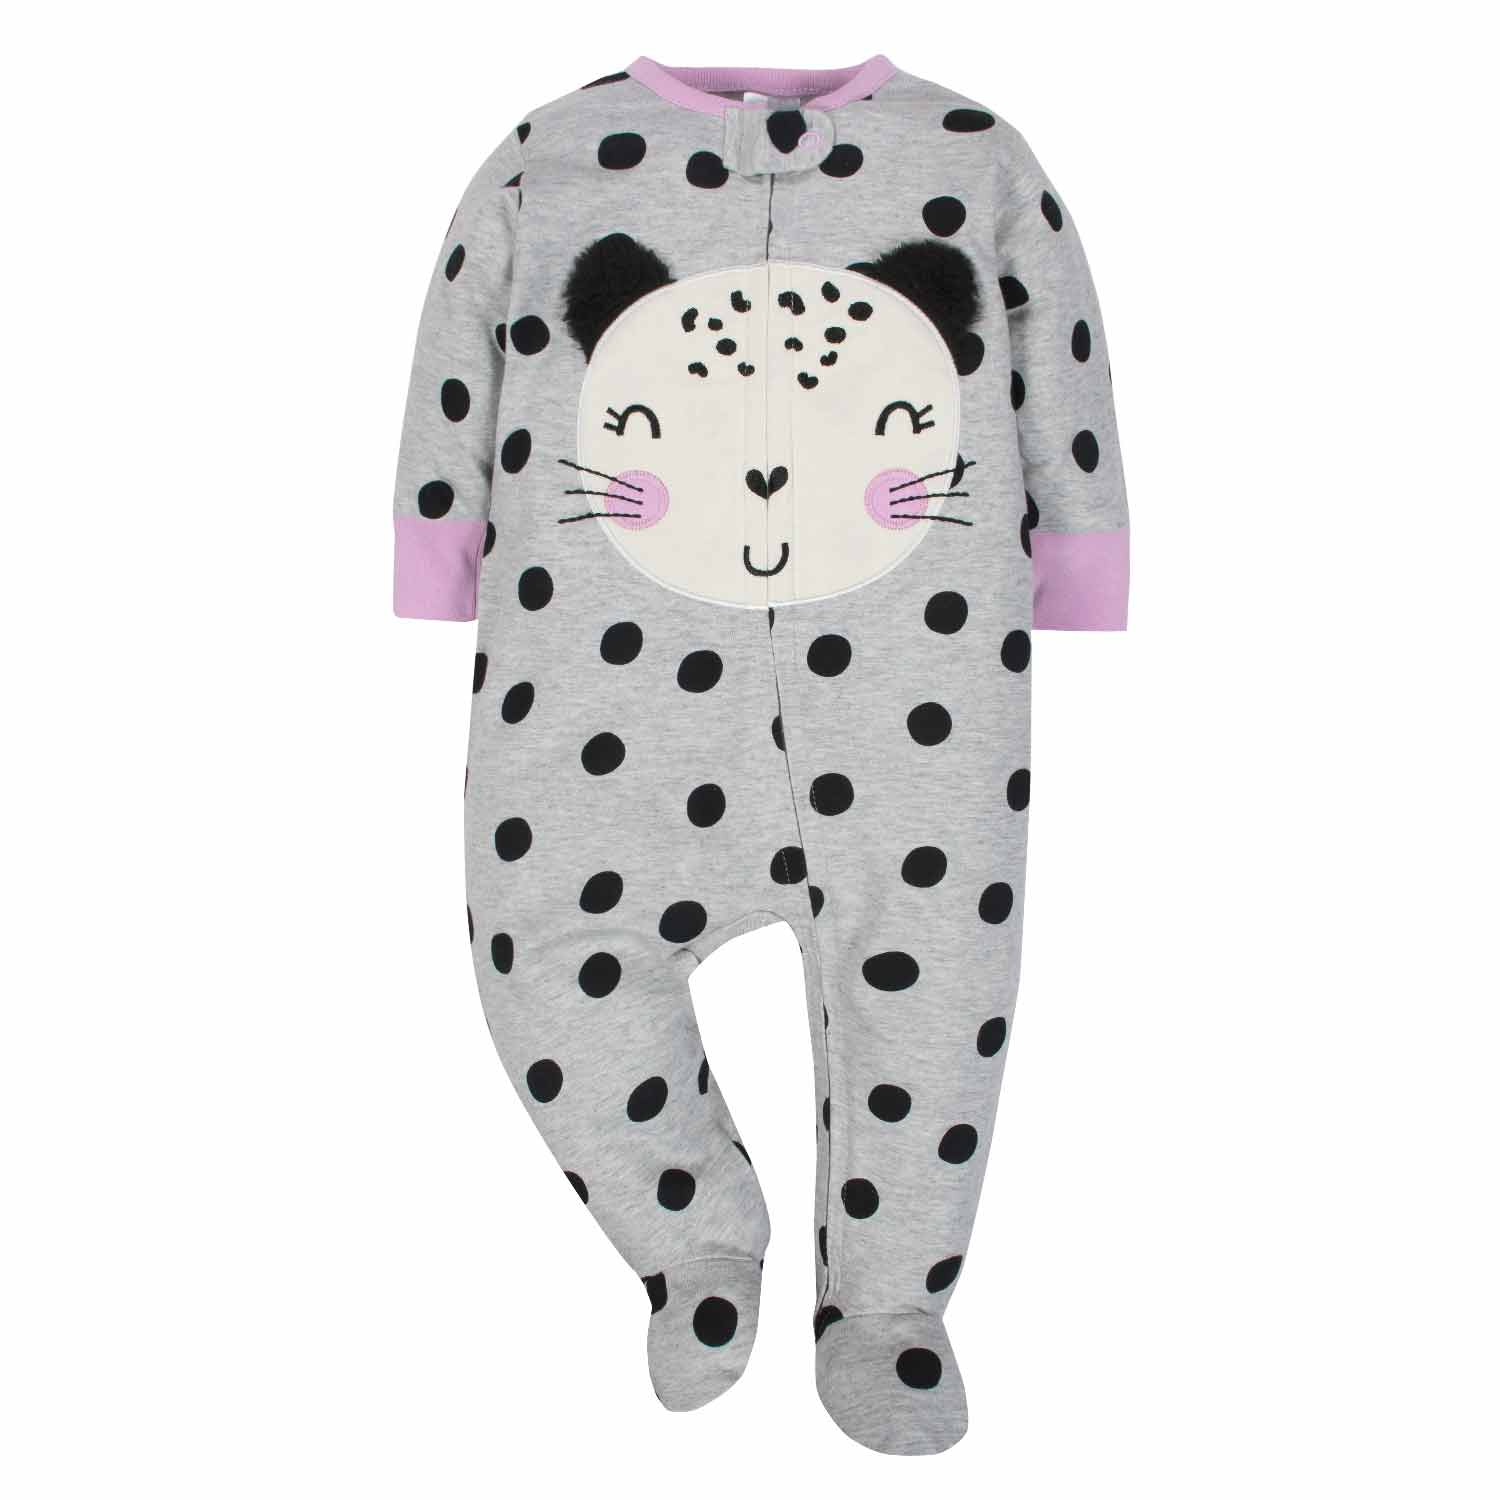 3-Pack Girls Cat Sleep N' Play - Limited Edition